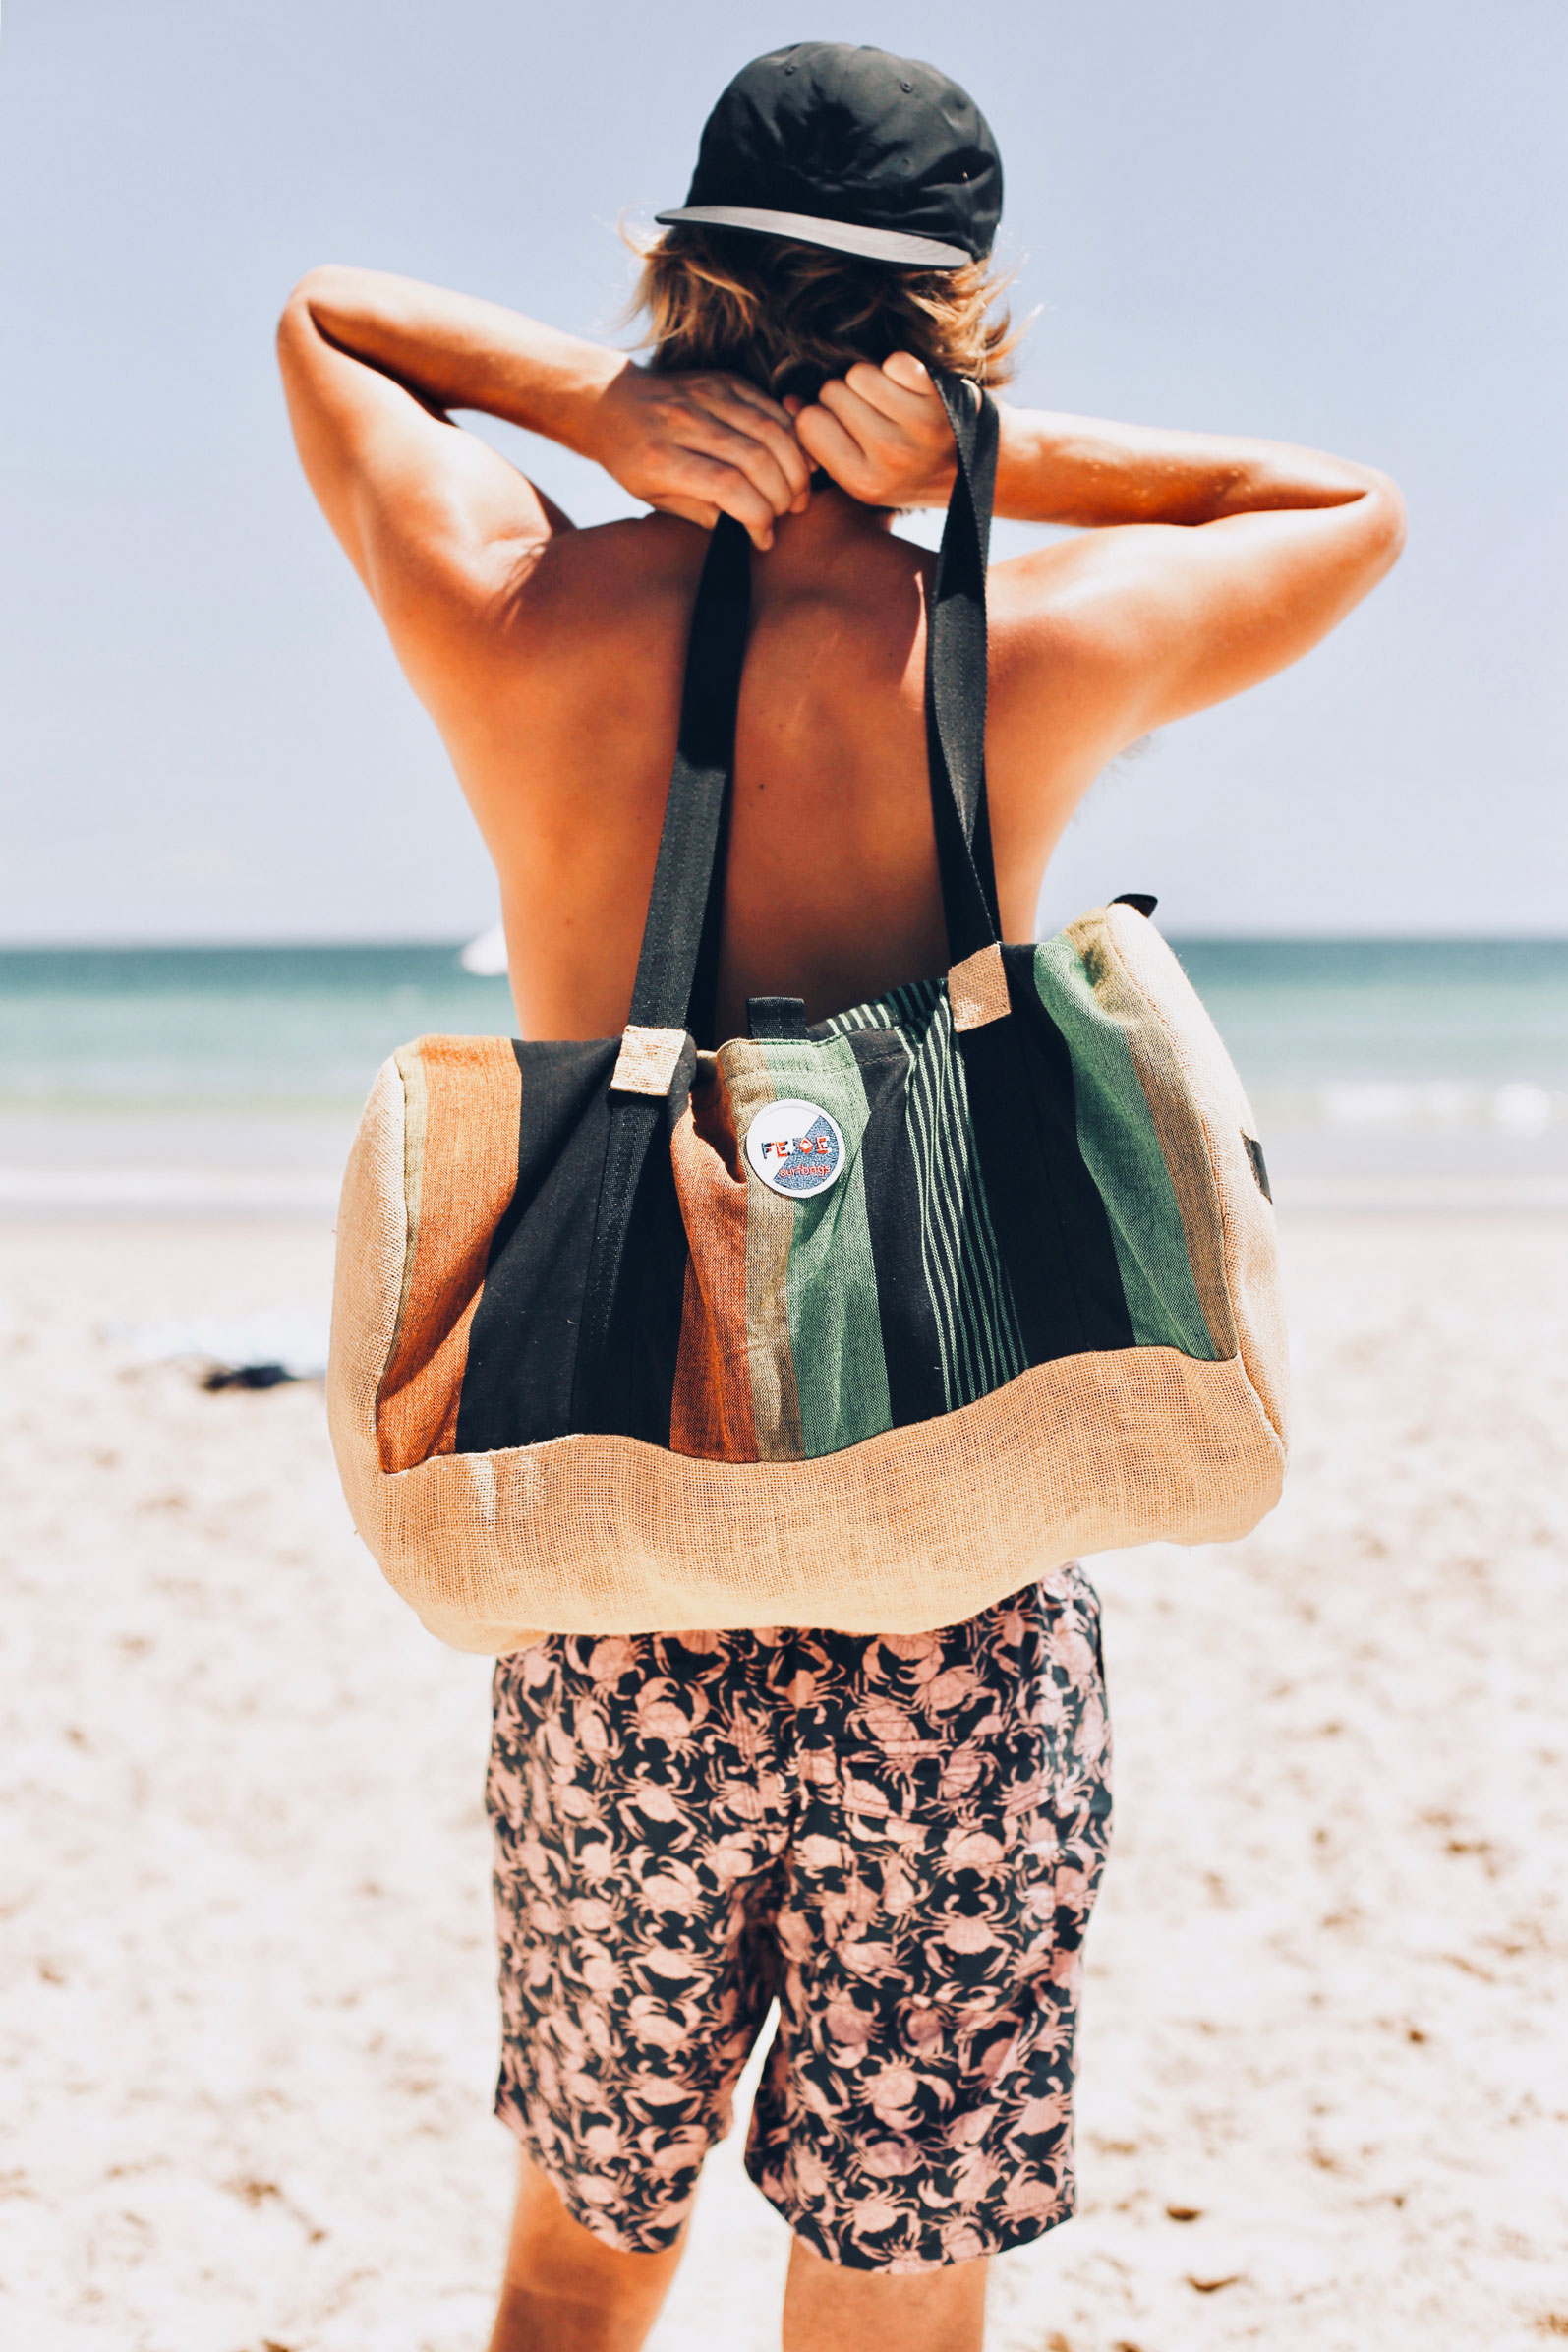 Surf and Travel Bags - Duffle Bags by Fede Surfbags